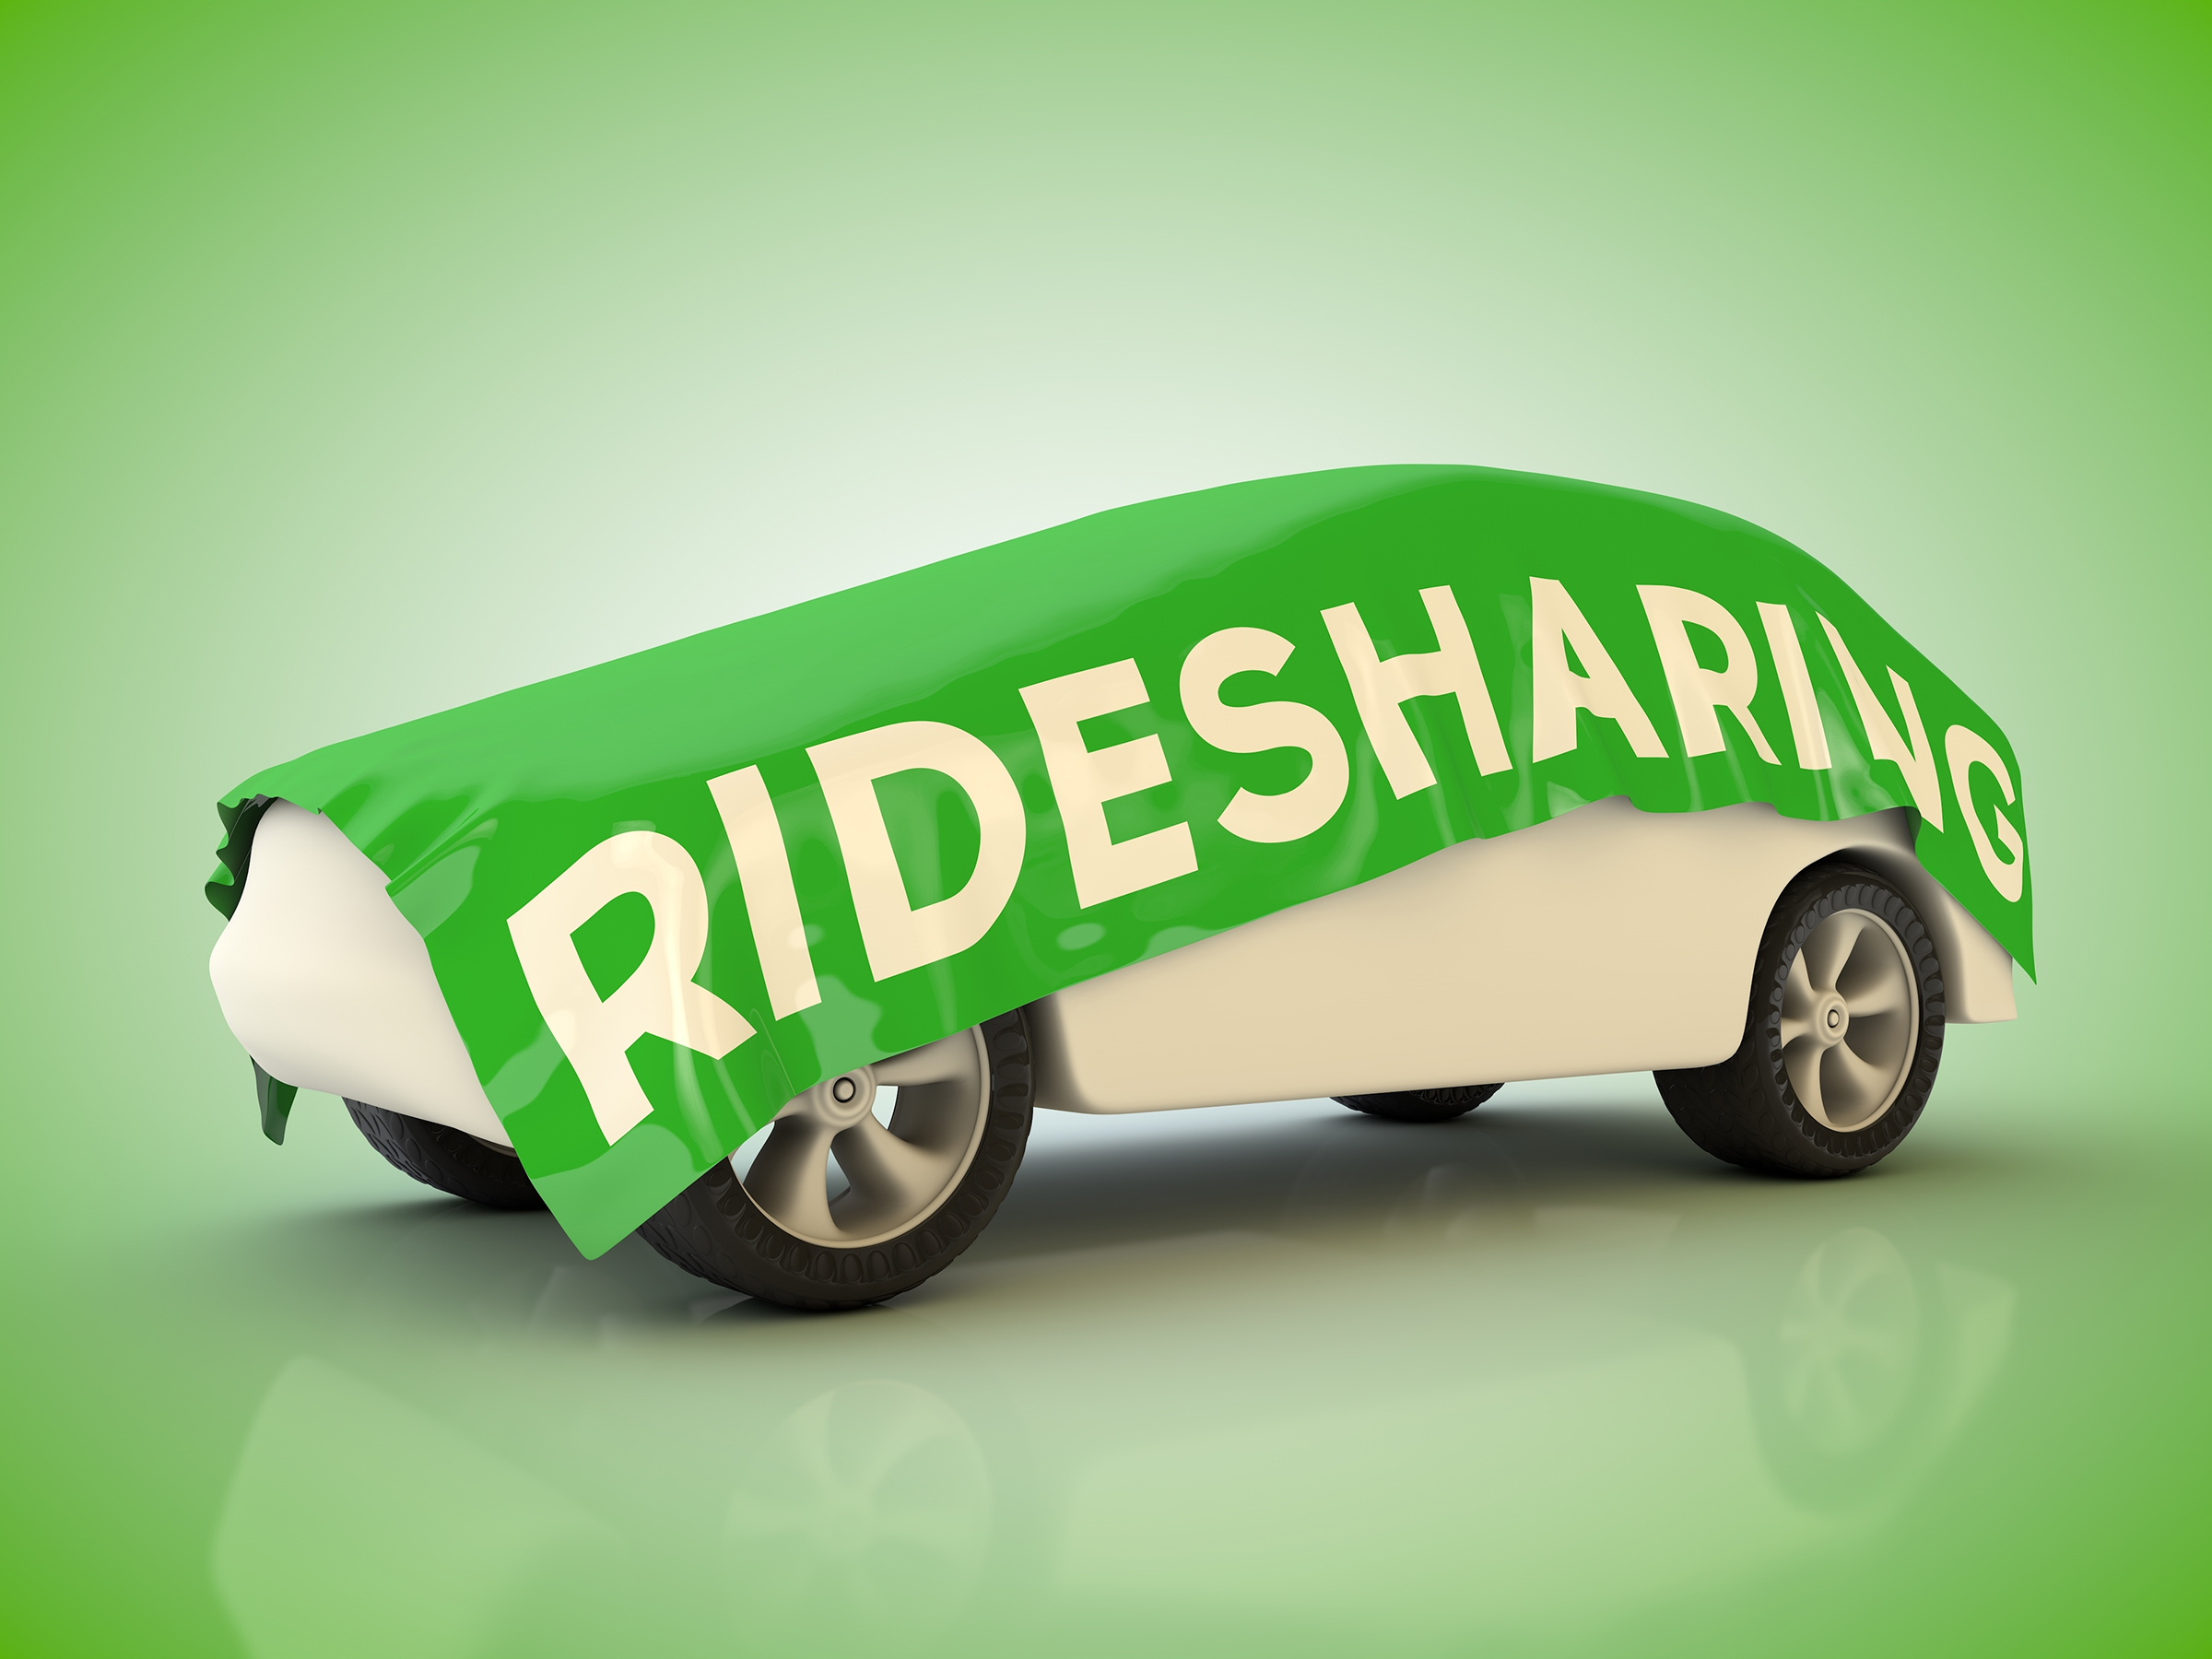 ride sharing Ride-sharing introduced in portland in 2015, ride-sharing companies uber and lyft offer convenient, cash-free rides scheduled via mobile app both companies serve portland international airport (pdx), picking up outside of baggage claim at the far left end of the first island.